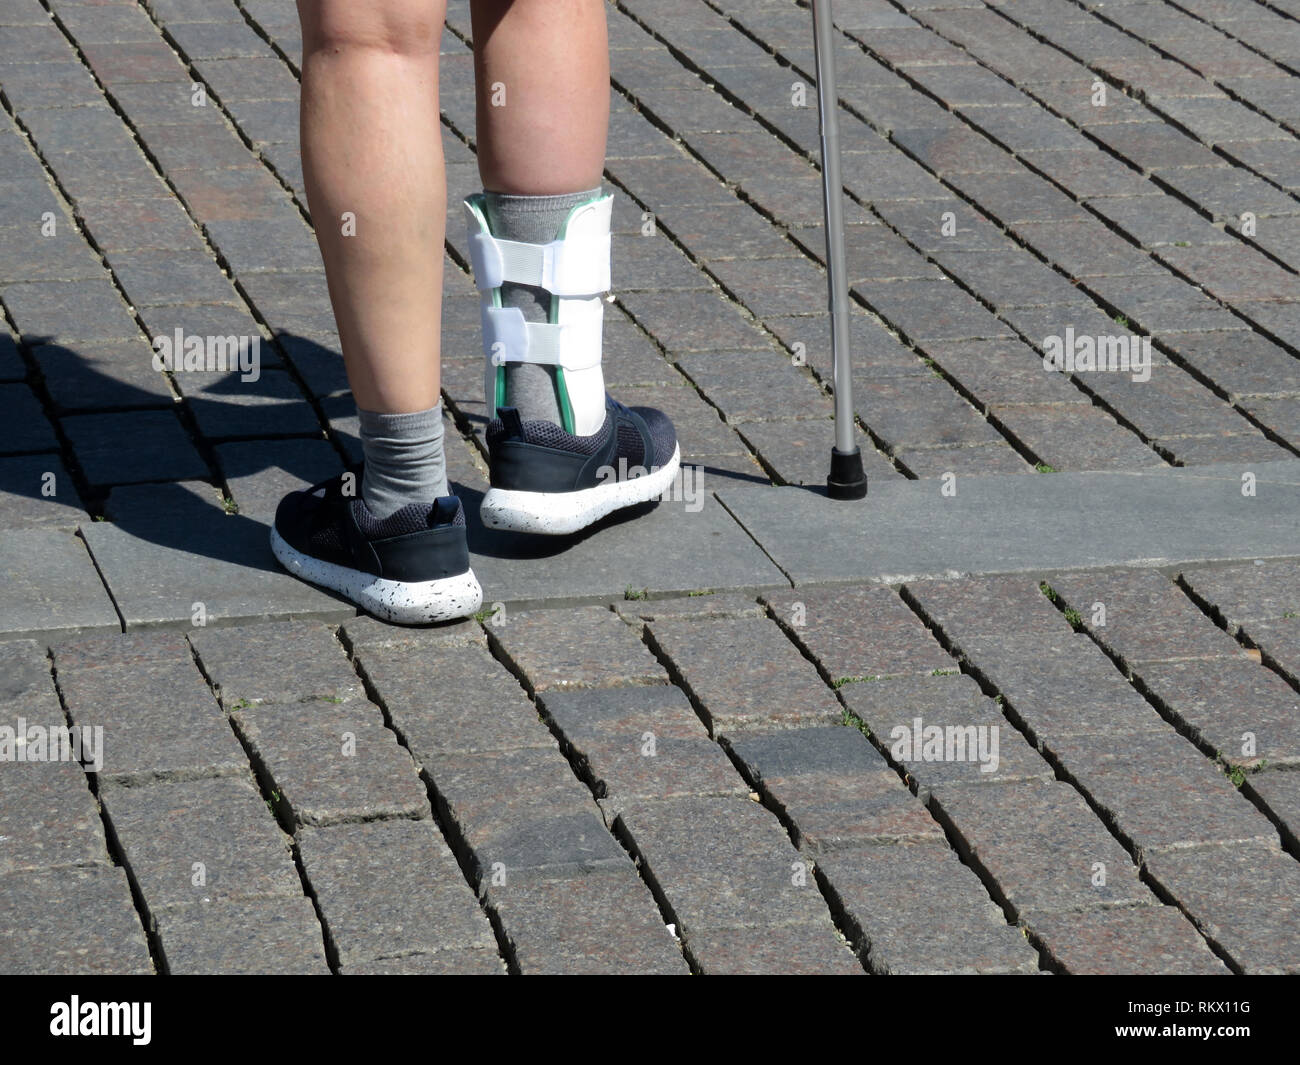 2ac9336a5e Female feet with the splint, orthosis for leg. Person with cane walking  after a